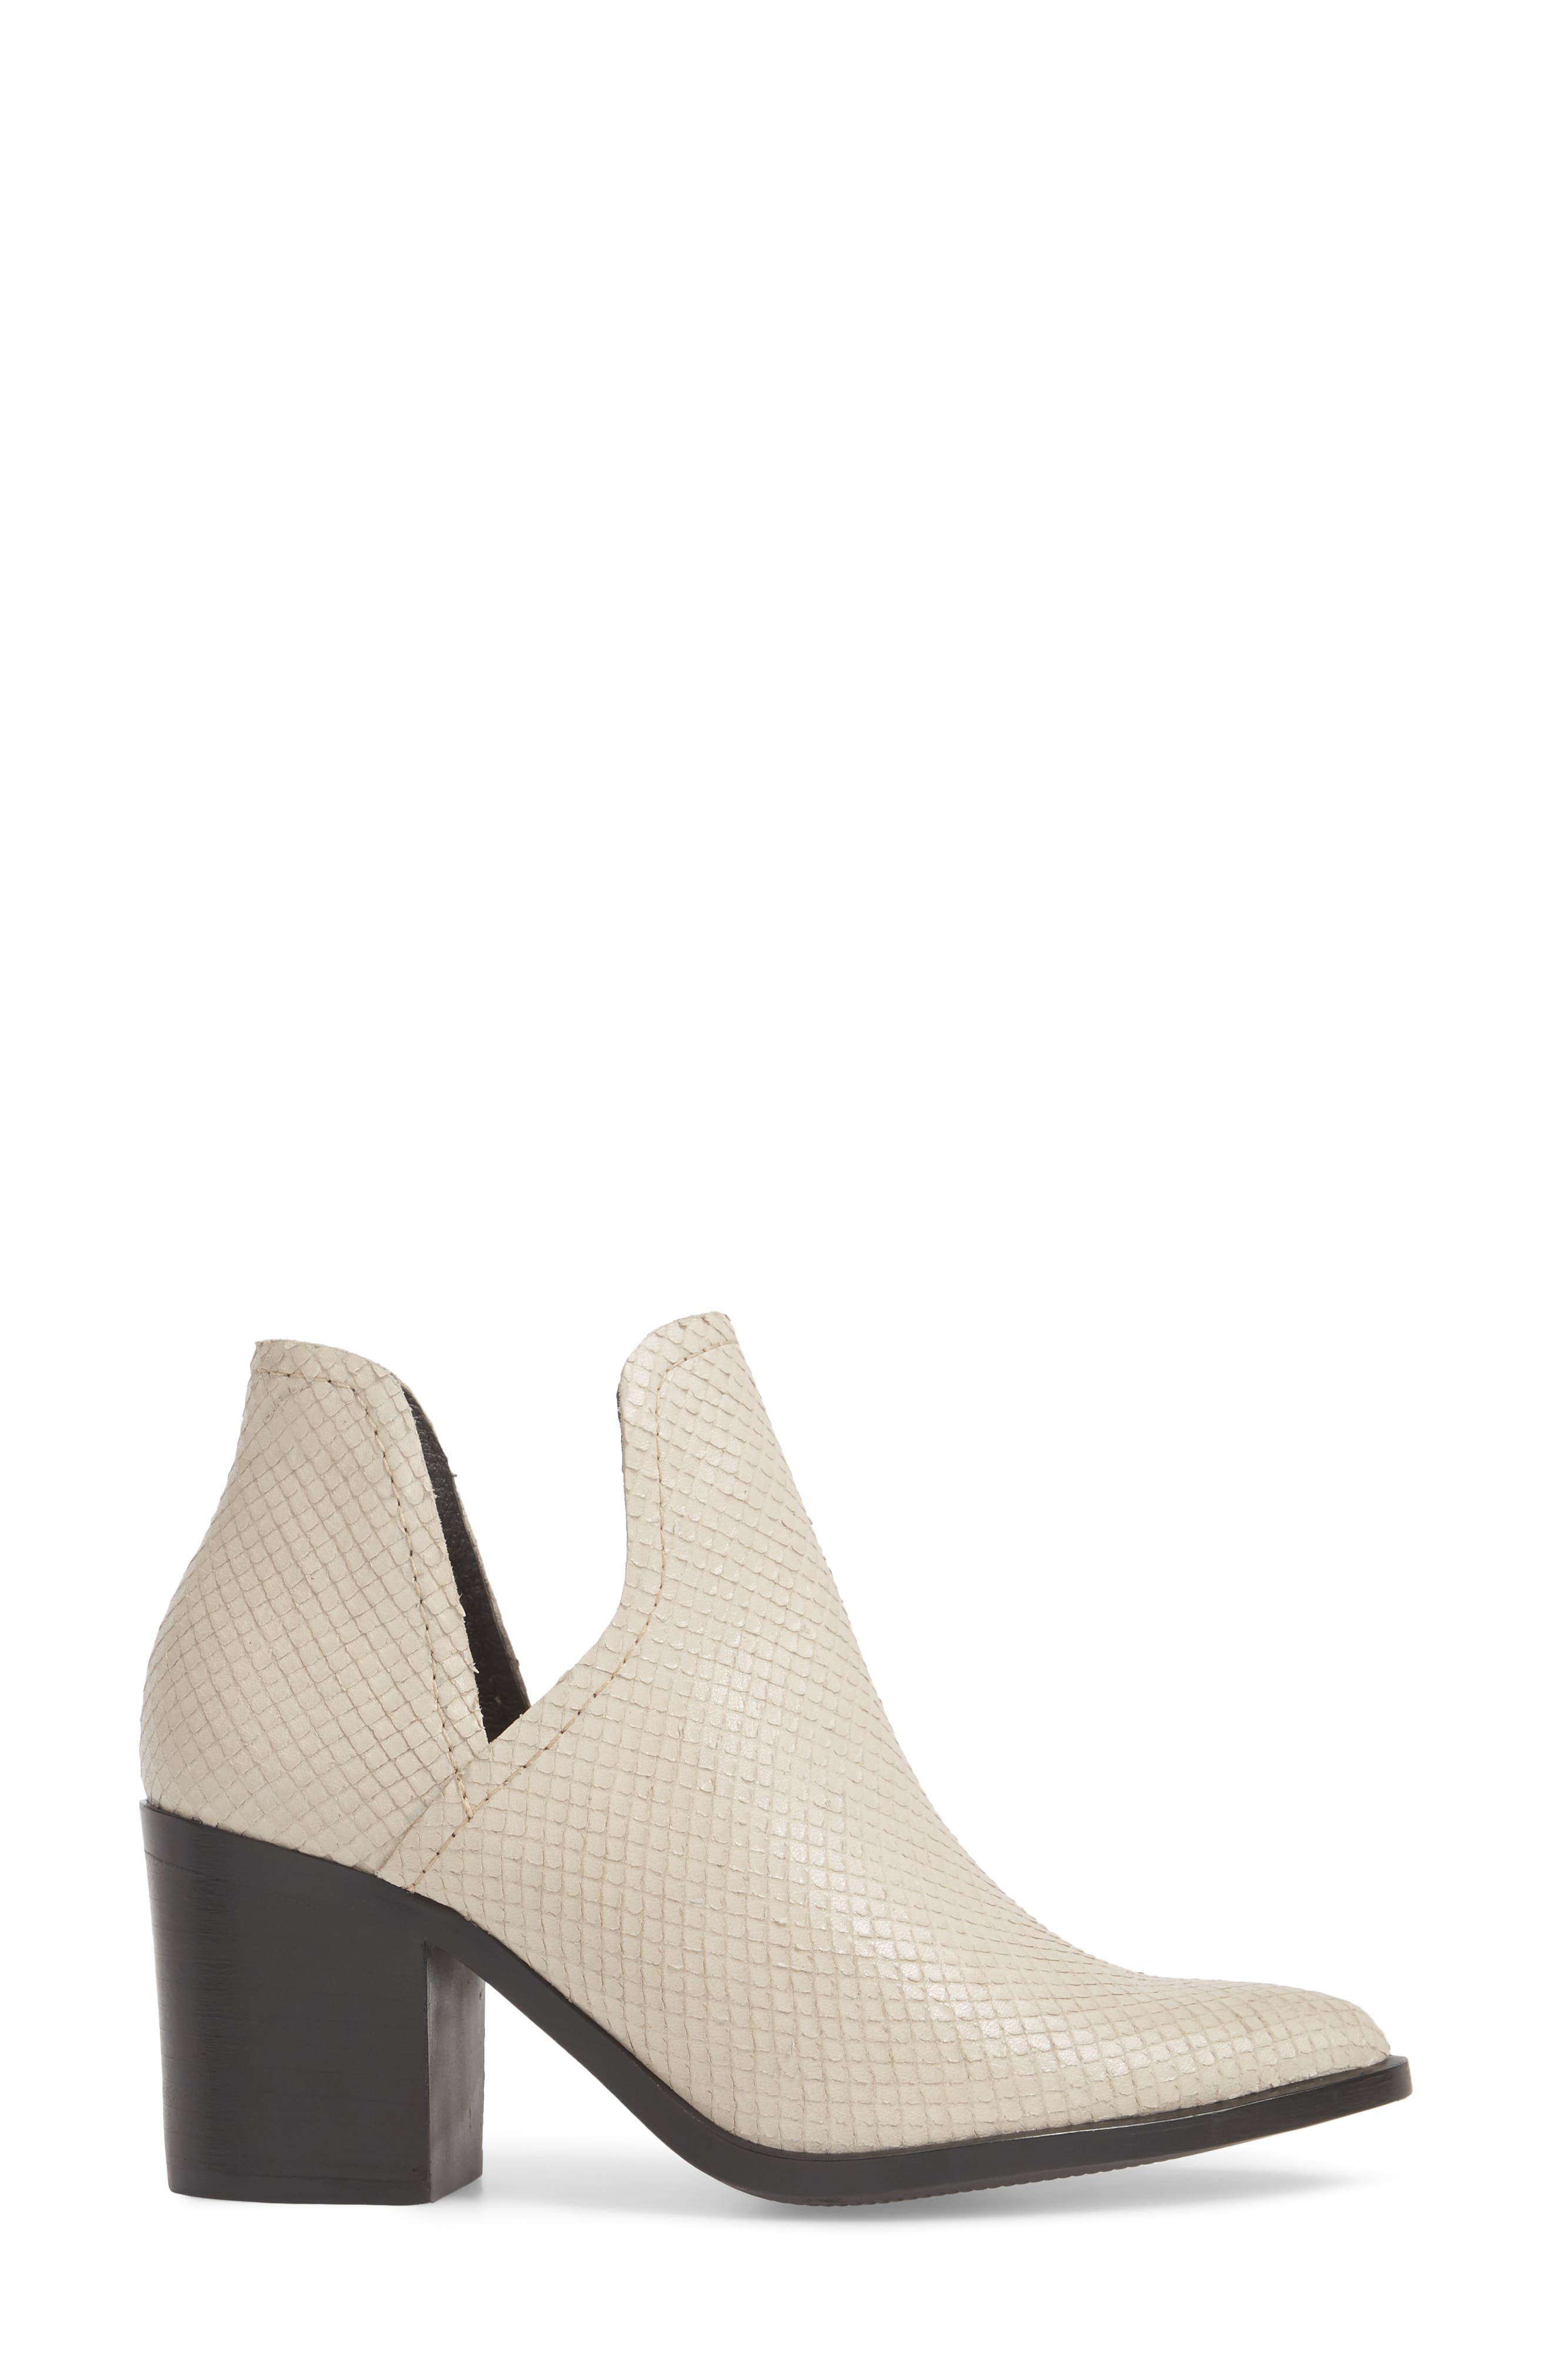 Petra Open Side Bootie,                             Alternate thumbnail 3, color,                             White Snake Print